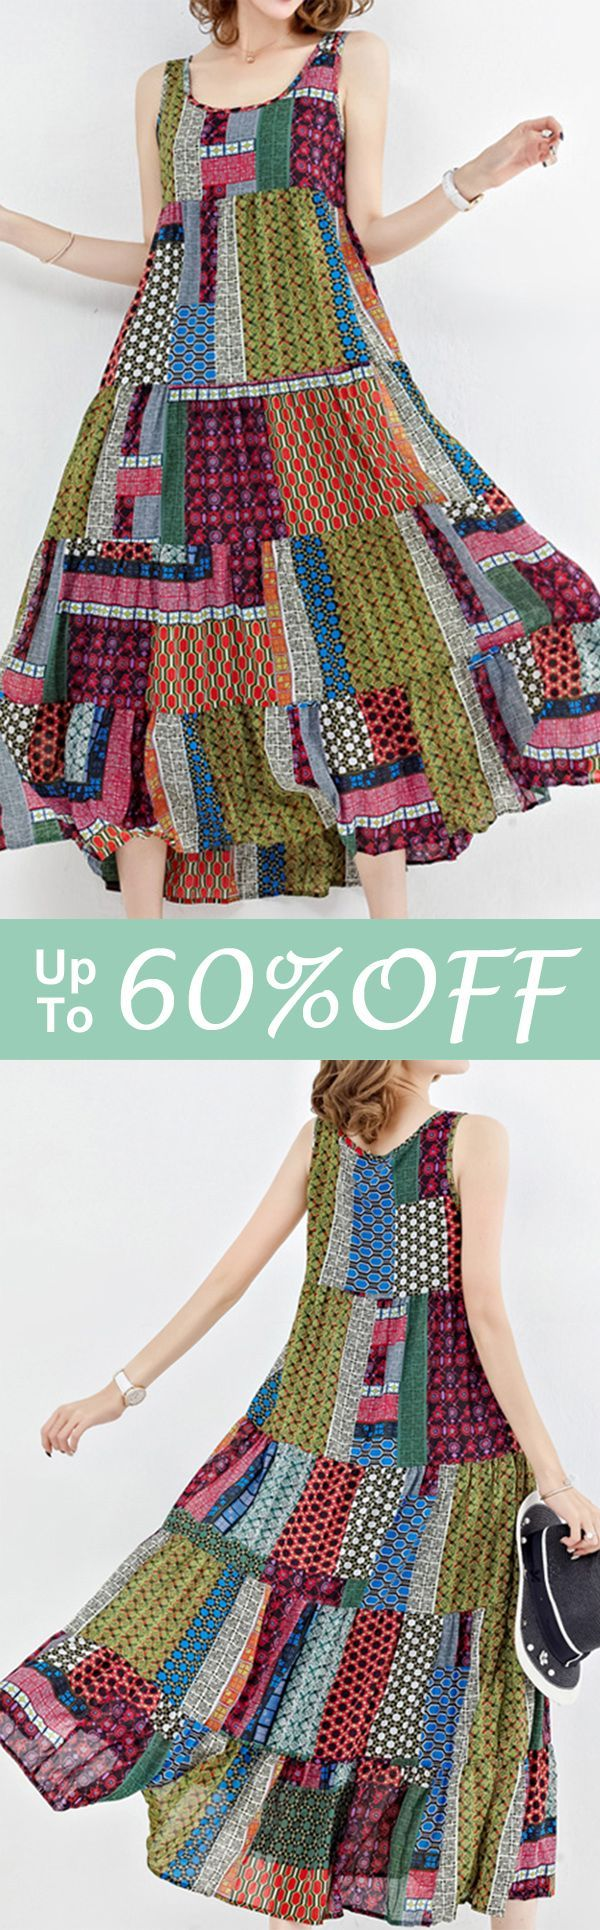 Up to 60%OFF&Free shipping. Fashion Trendy dresses for women, you can find everything you want in banggood.com, shop now!